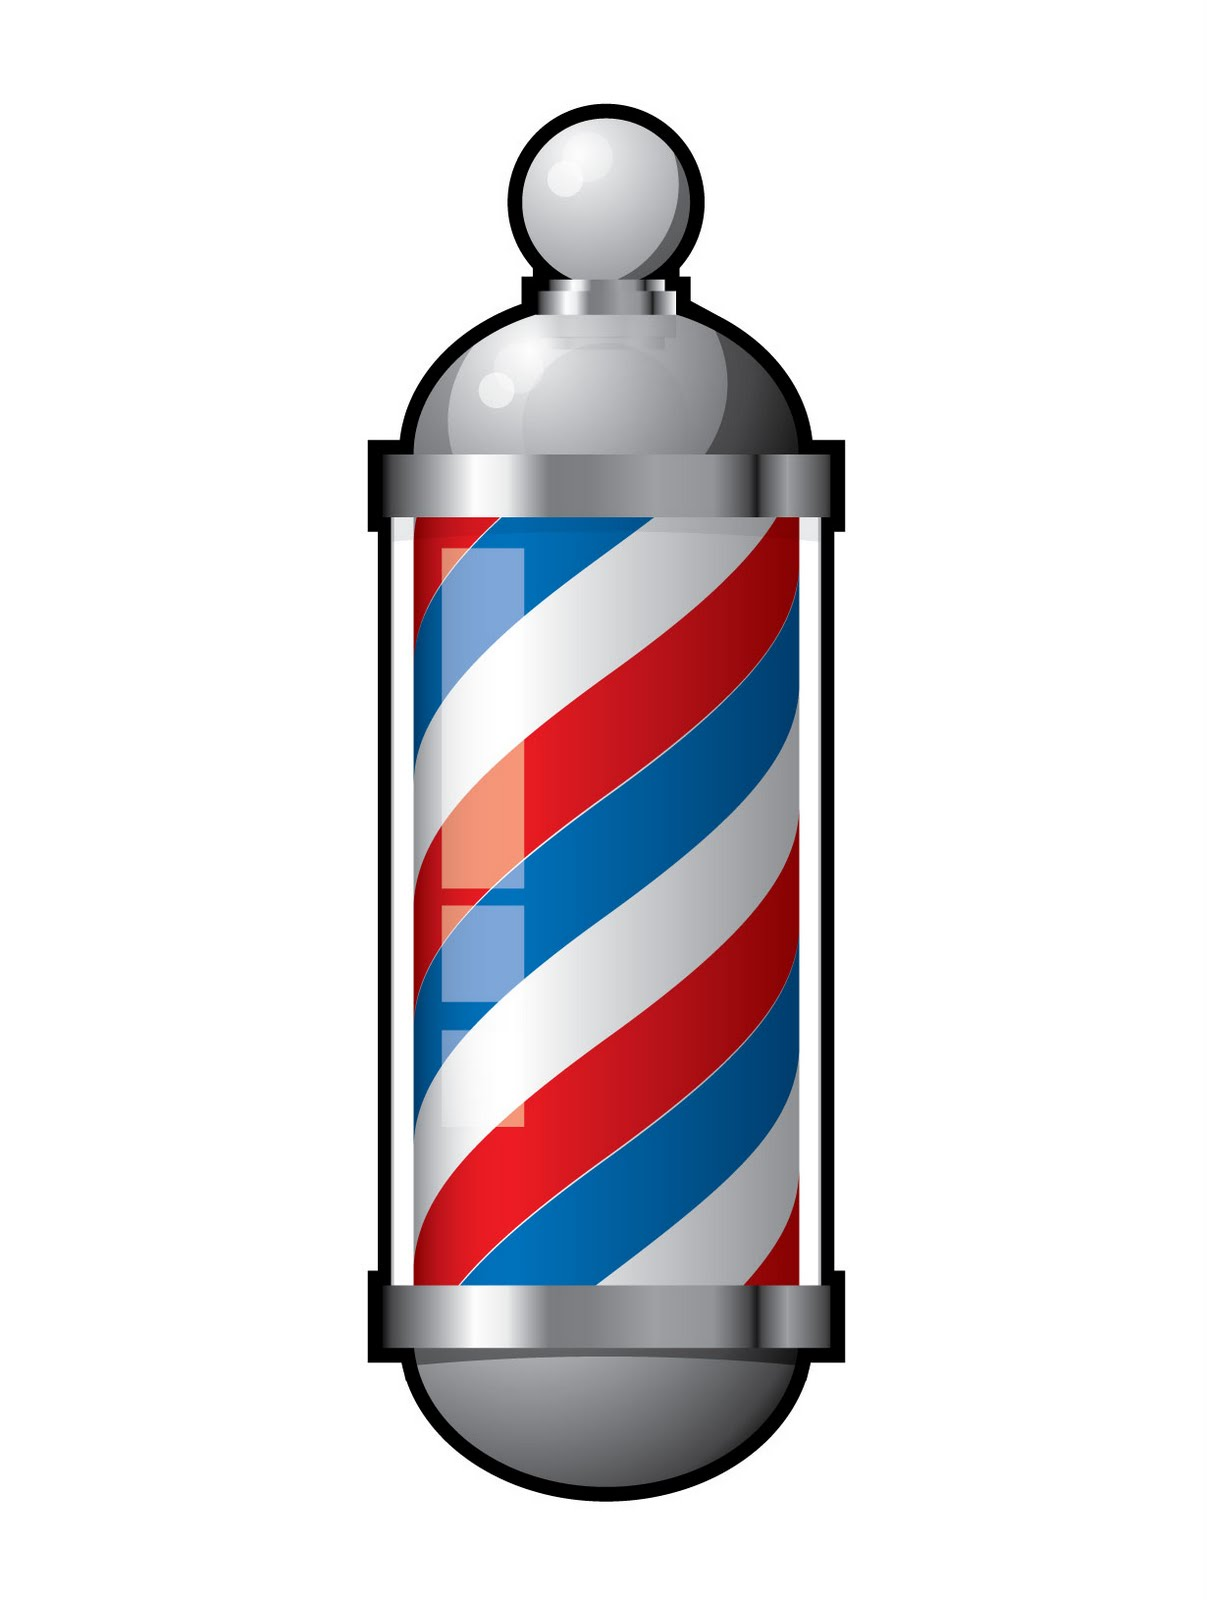 Barber Art : 32 barber pole vector . Free cliparts that you can download to you ...